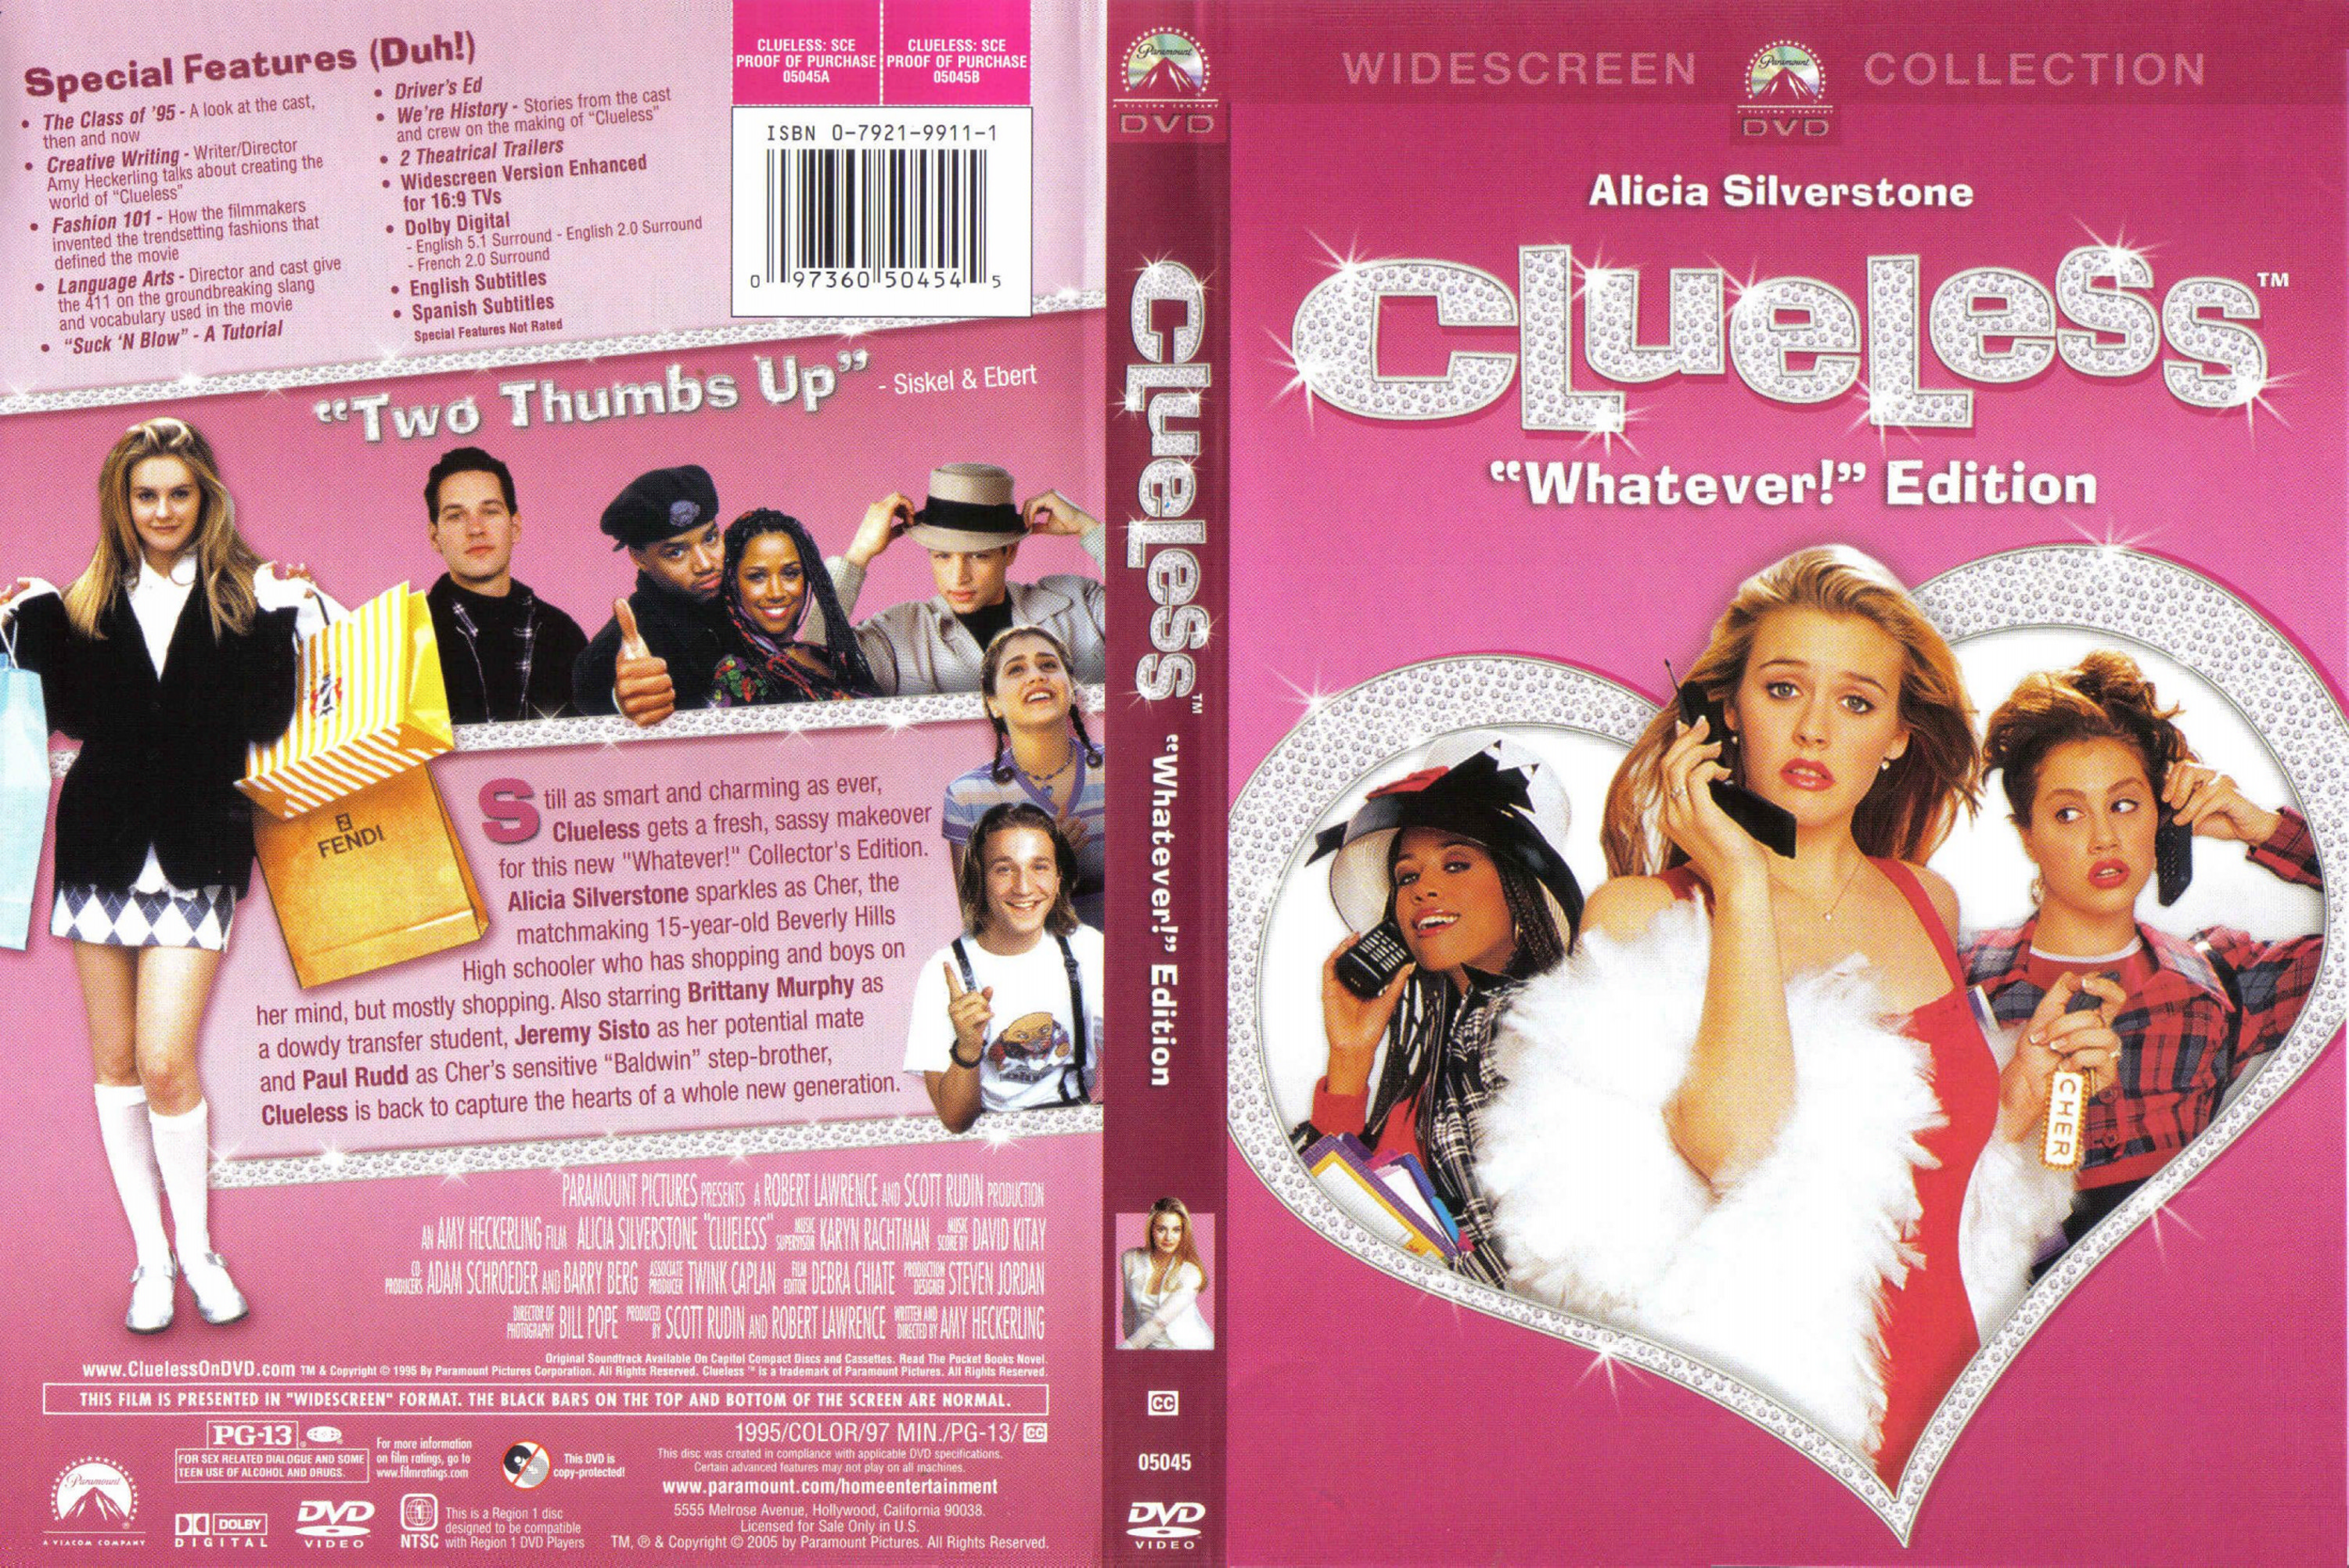 COVERS BOX SK ::: Clueless (1995) - high quality DVD